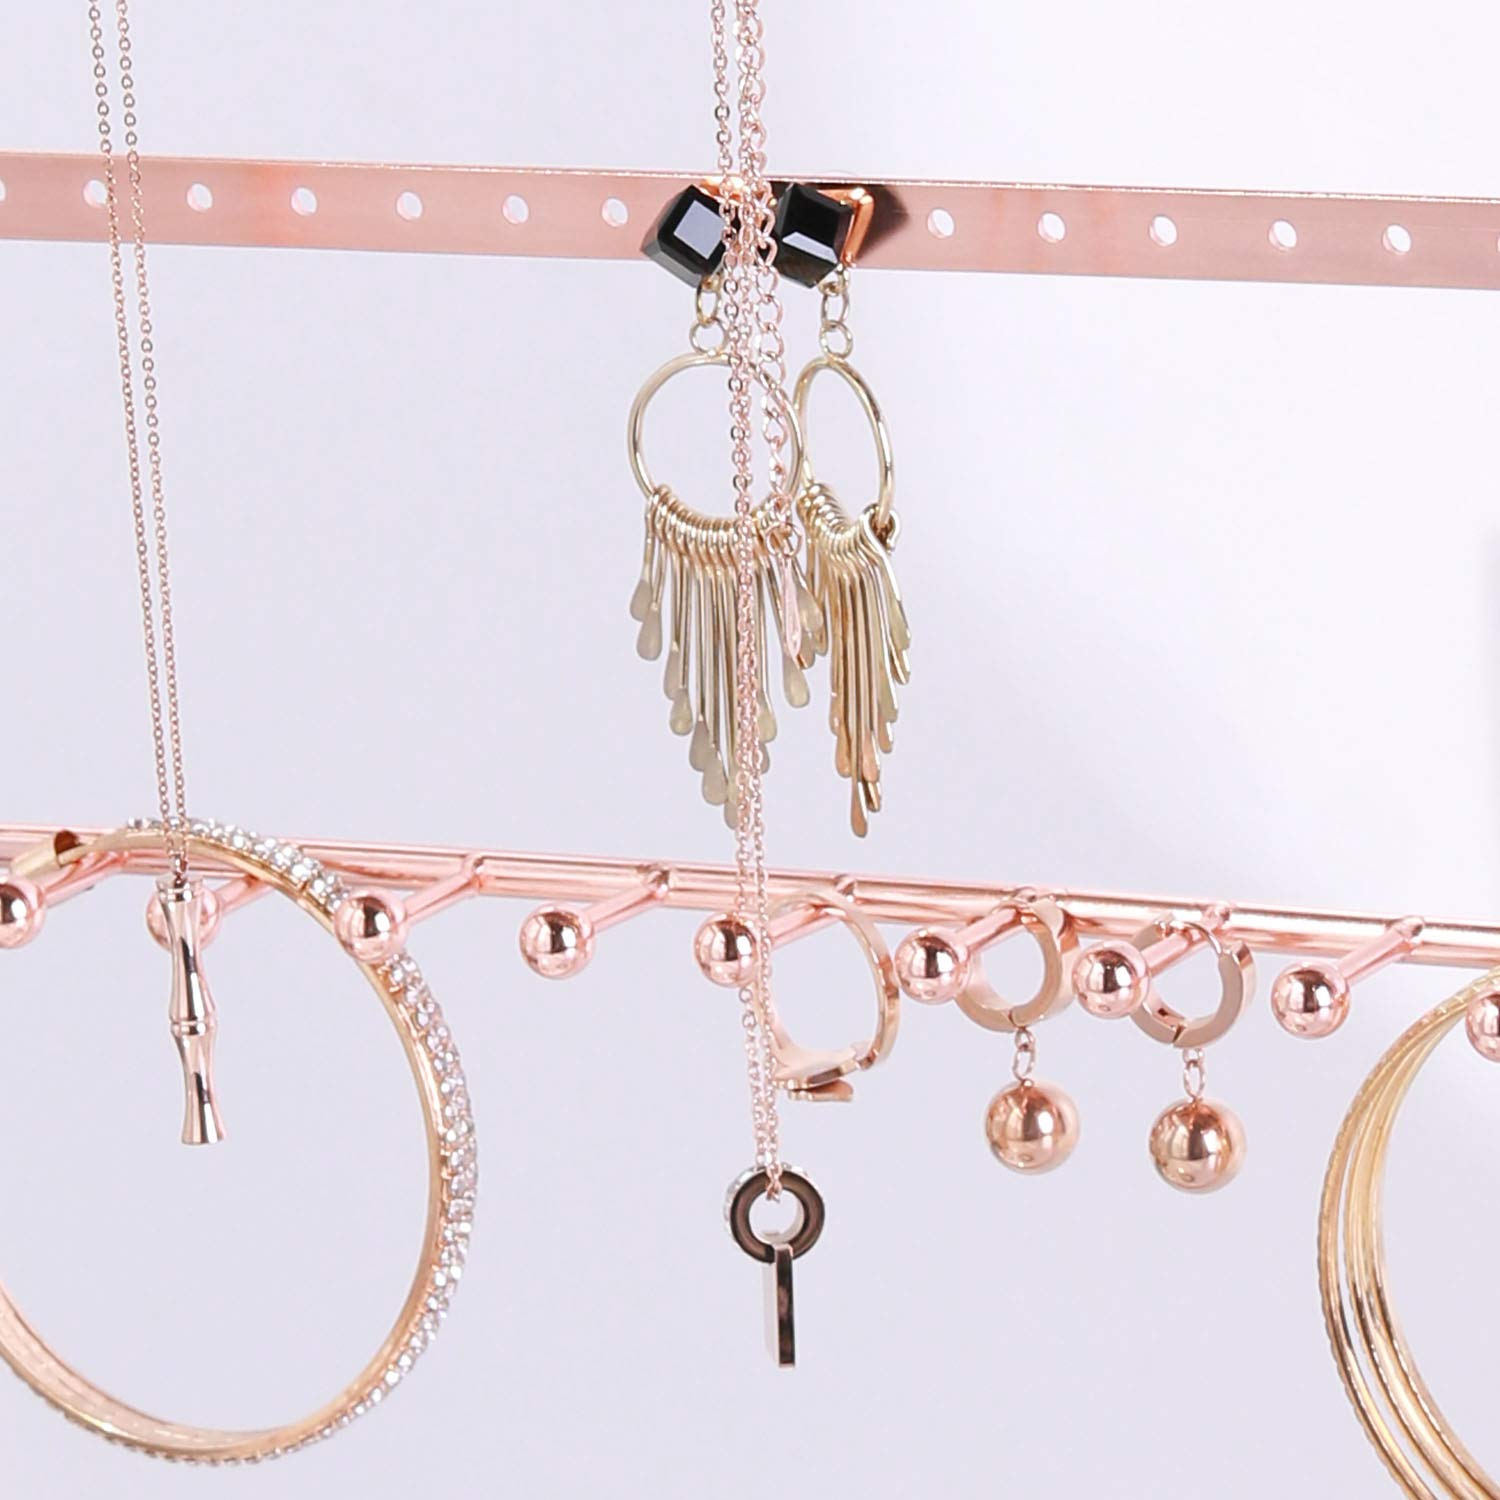 Storage Organization Simmer Stone Rose Gold Jewelry Stand 4 Tier Jewelry Organizer Holder Decorative Jewelry Storage Hanger Display With Tray For Rings Bracelets Necklaces Earrings Home Kitchen Credai Surat Com